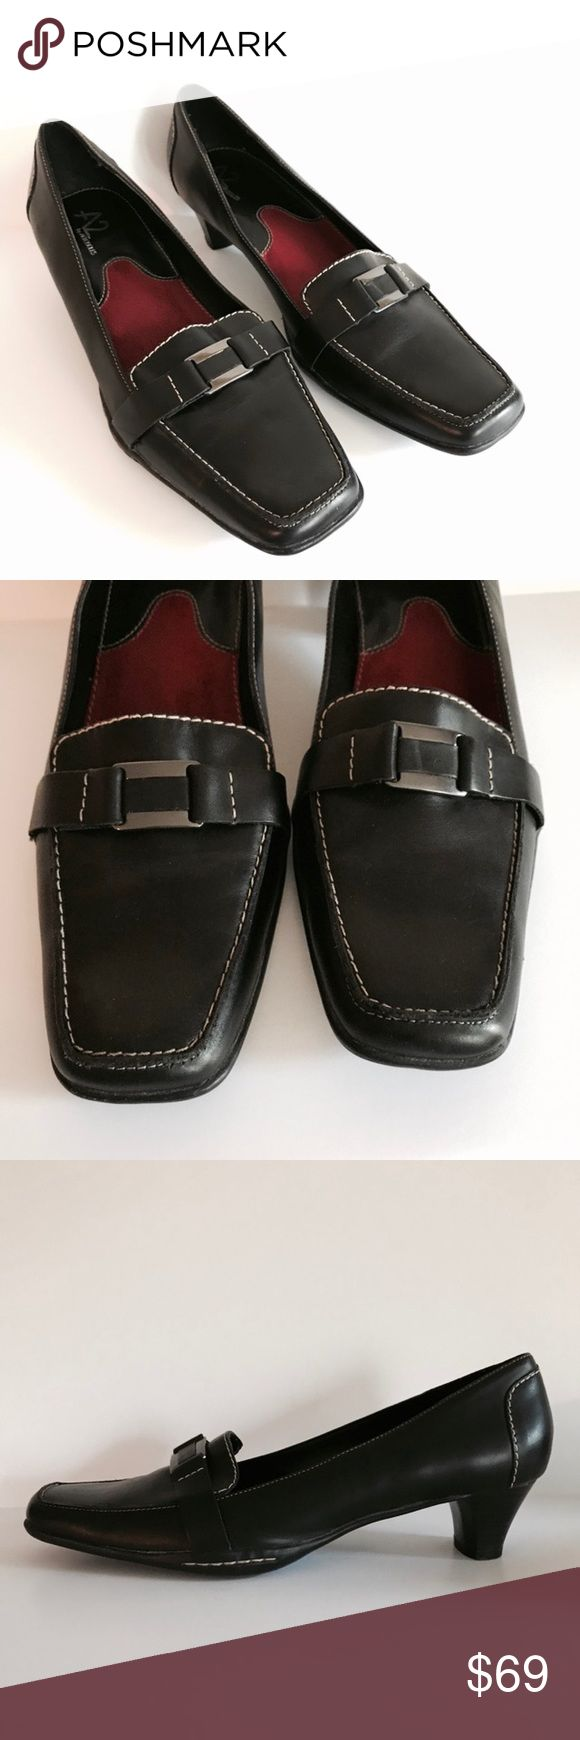 A2 by Aerosoles tailored leather shoes, sz. 11 A2 by Aerosoles tailored Safety Latch black leather shoes, sz. 11. Excellent condition! A2 By Aerosoles Shoes